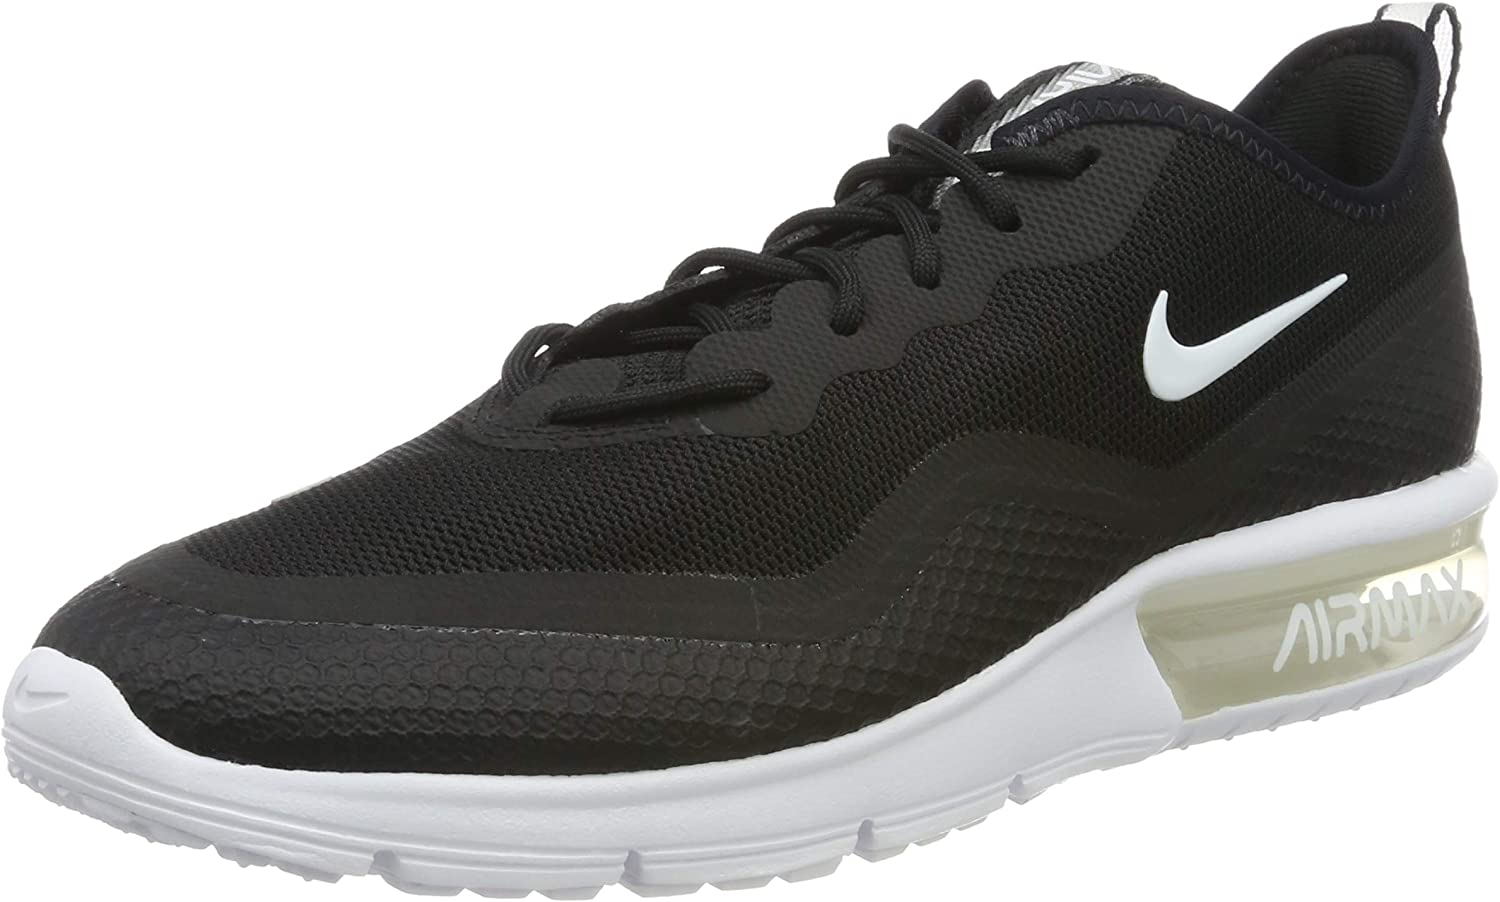 Nike Women's Air Max Sequent 4.5 Running Shoe Black/White Size 9 M US